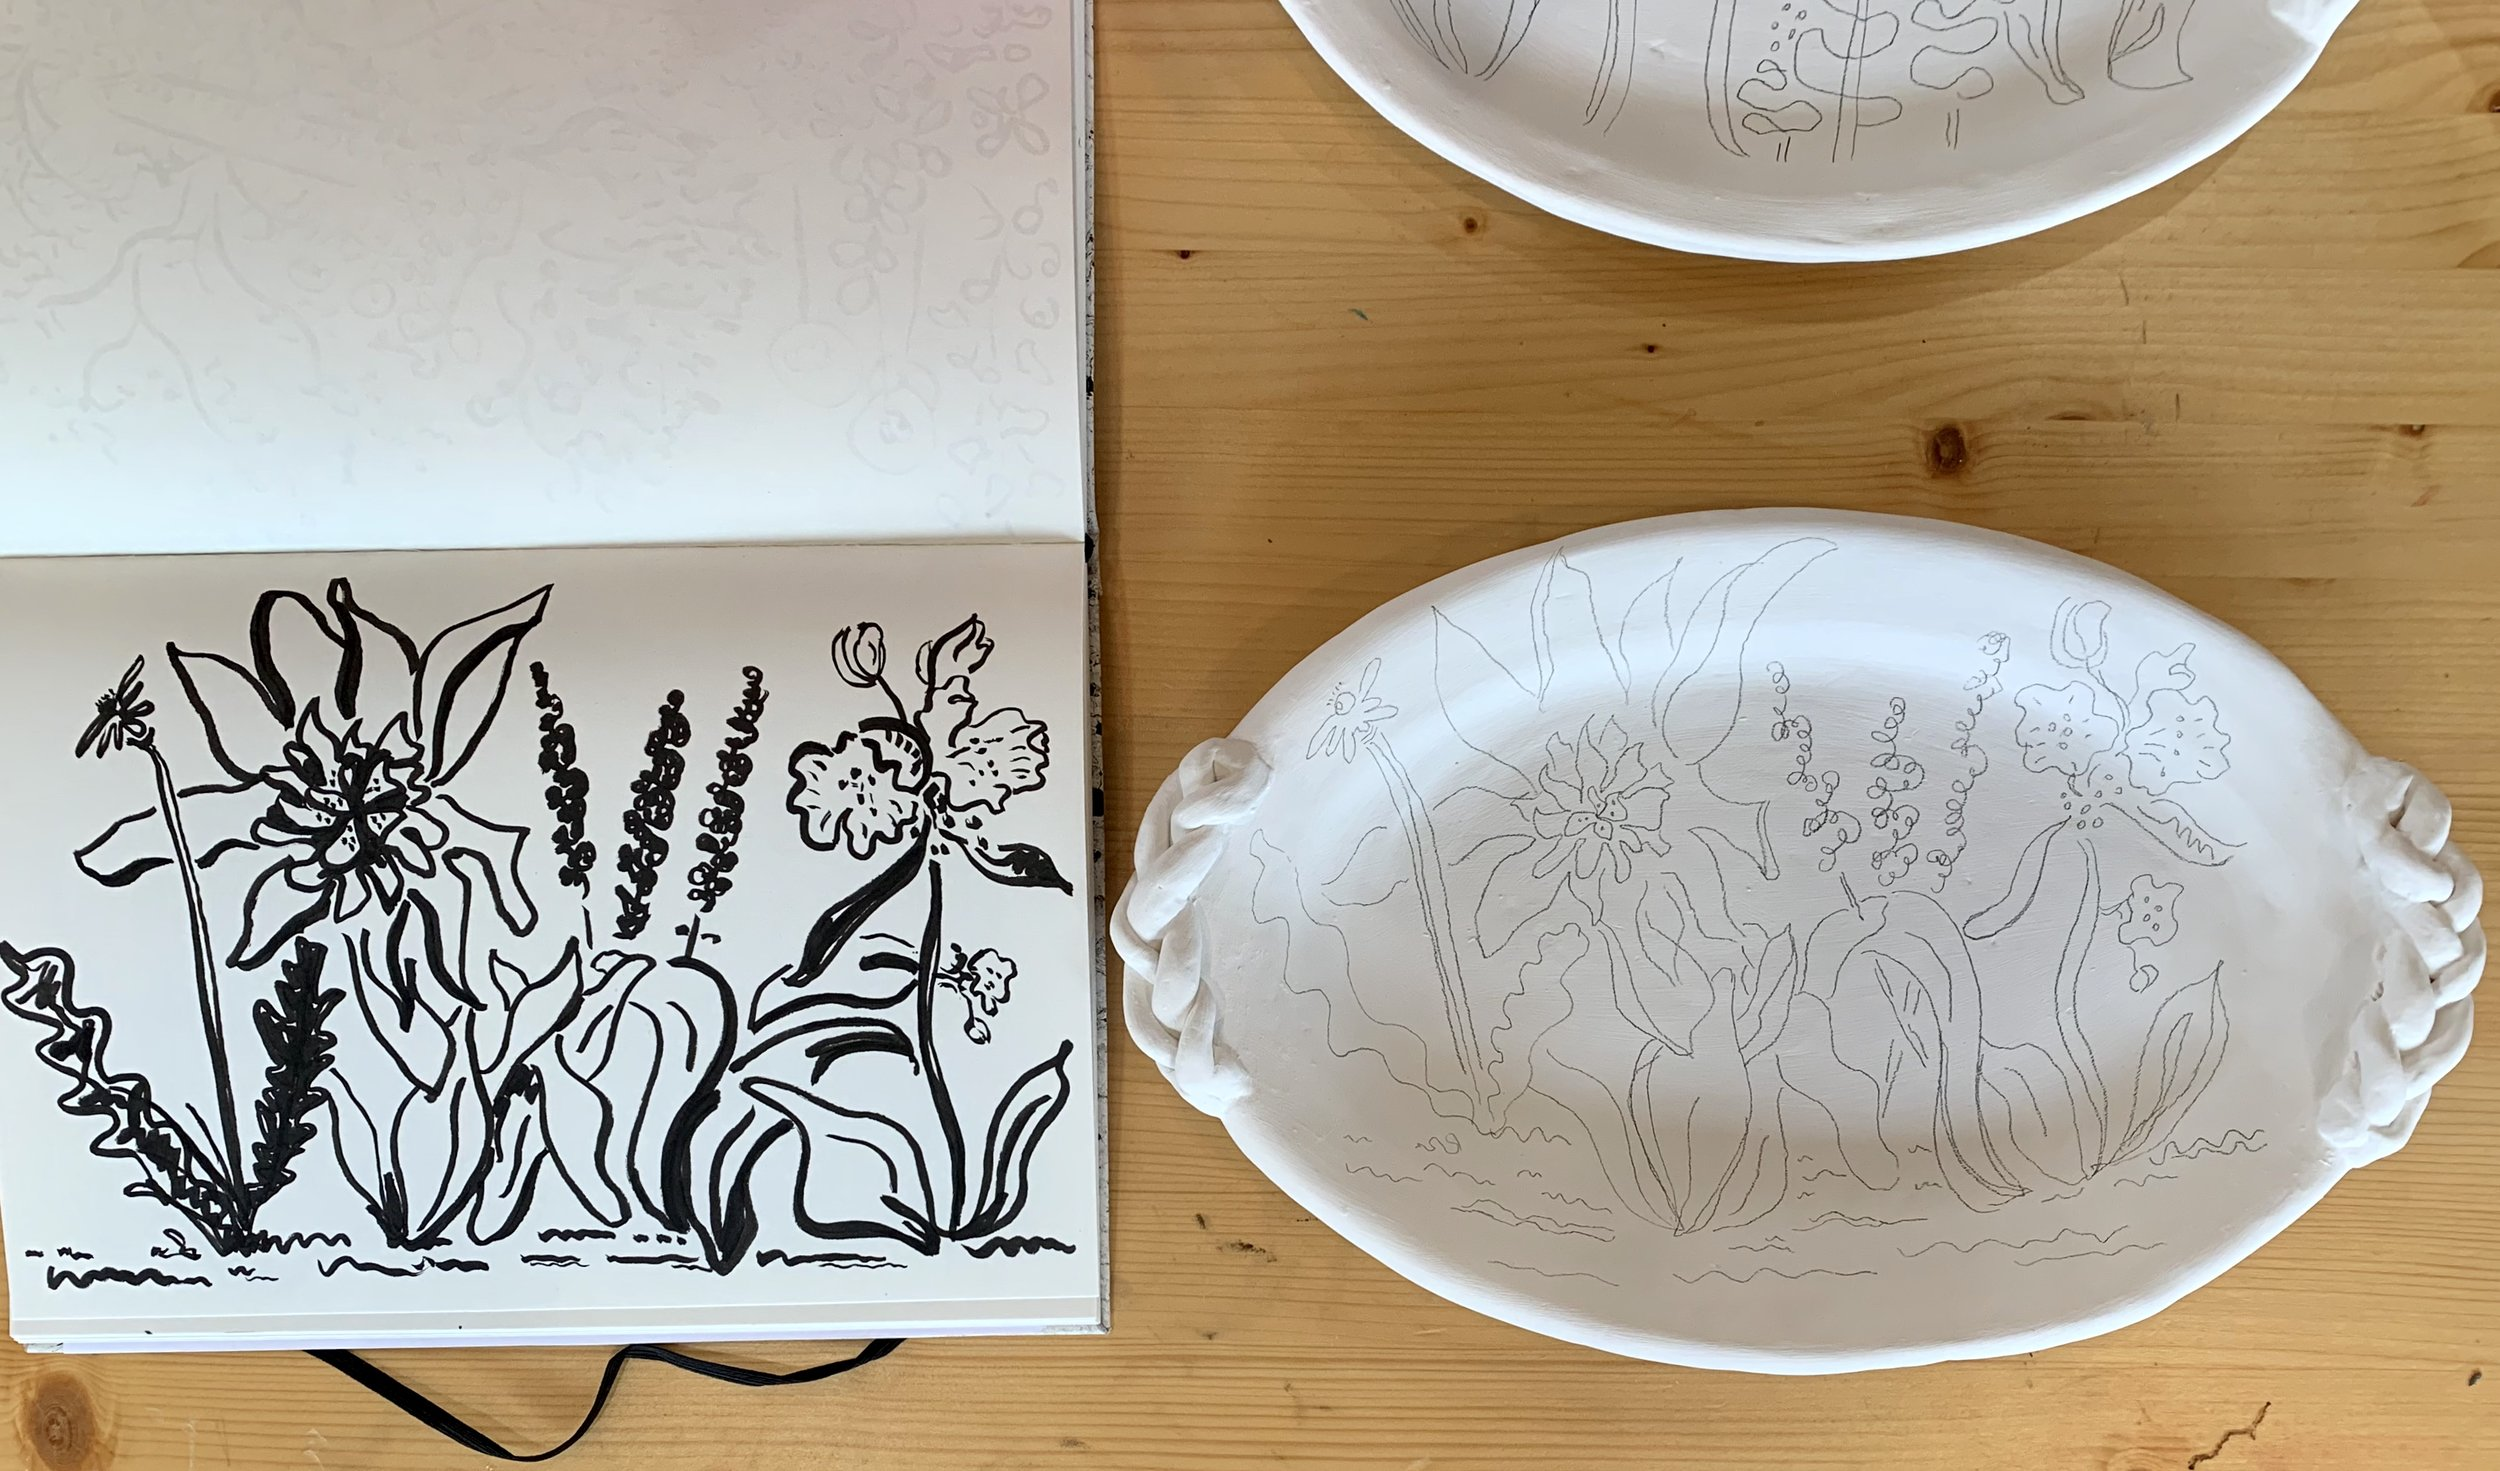 kate lewis art.braided platters in the works.jpg